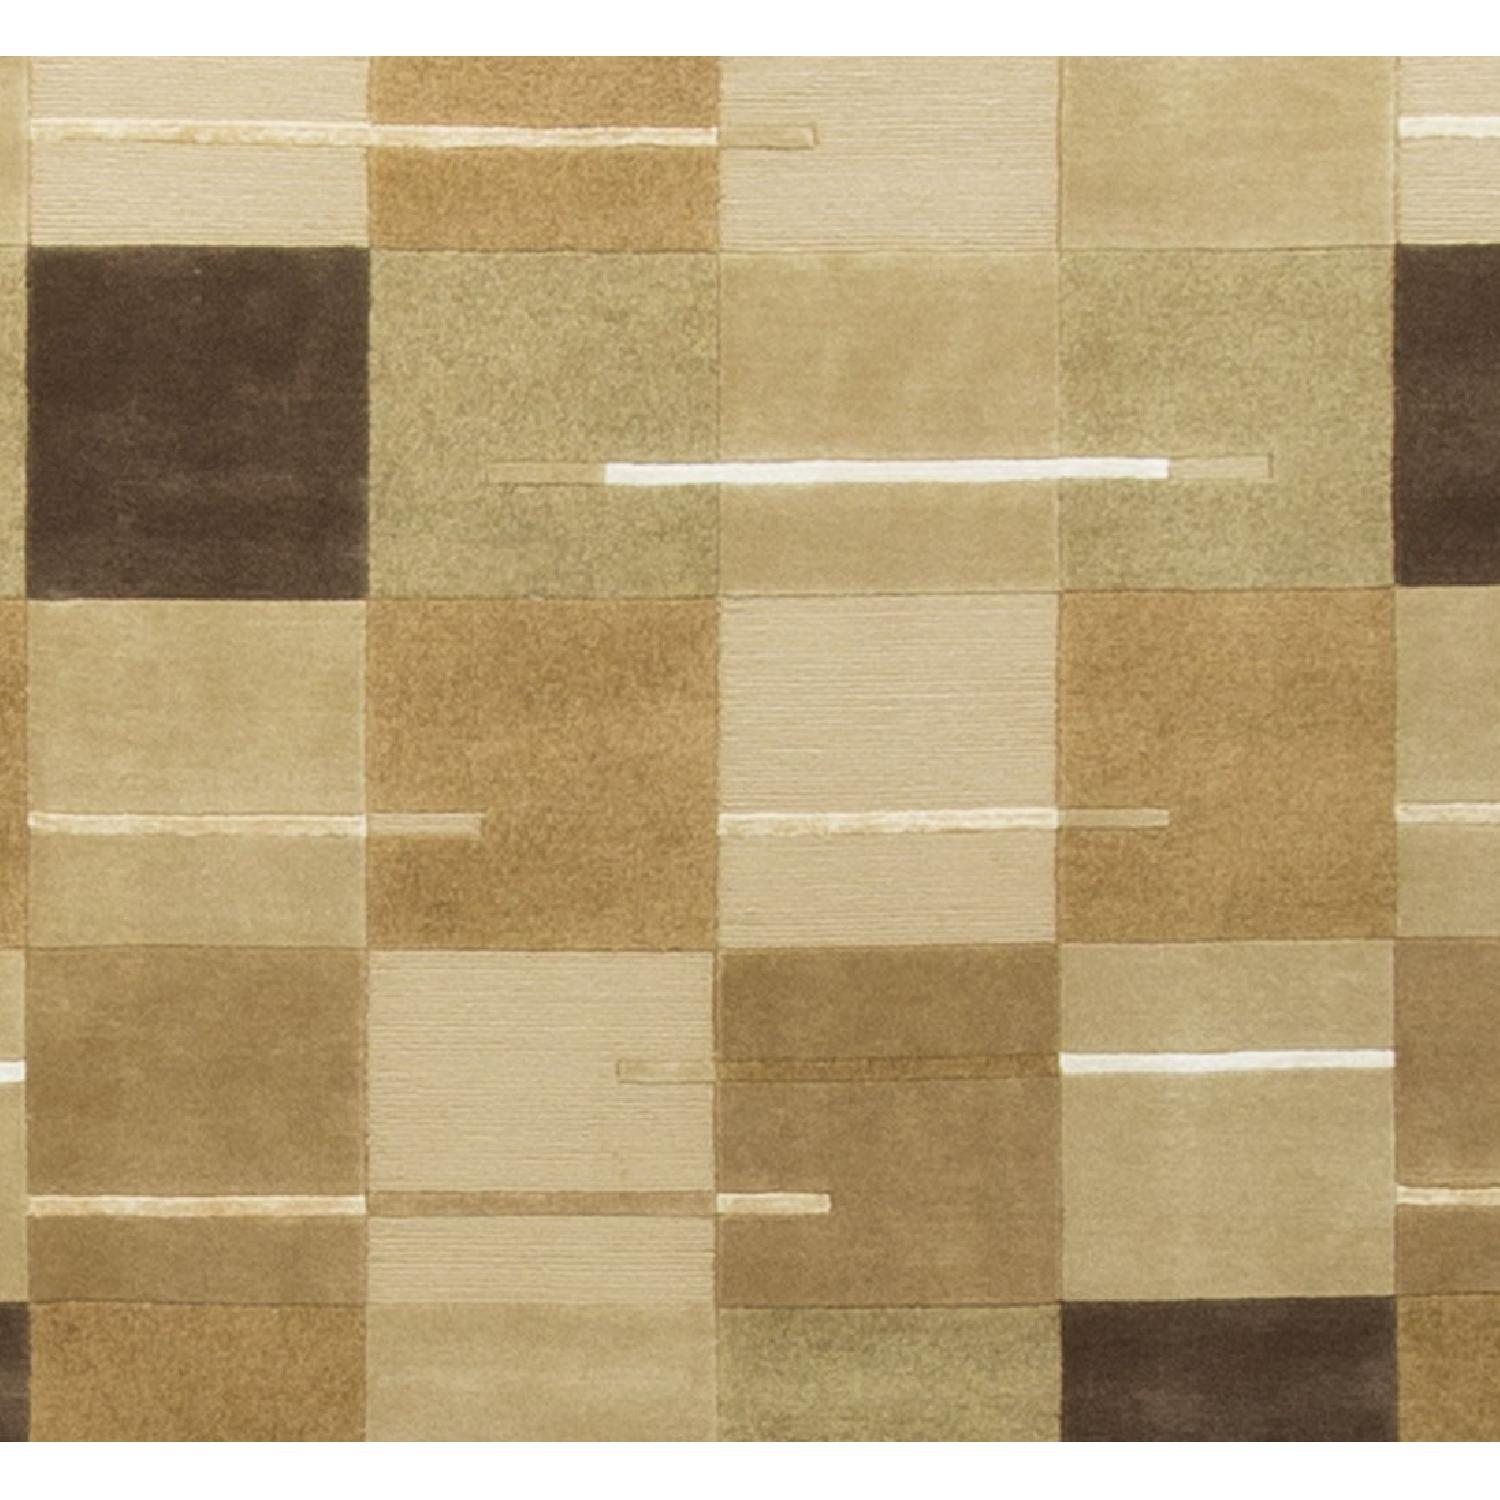 Modern Contemporary Hand Knotted Wool Rug in Beige/Multi - image-2